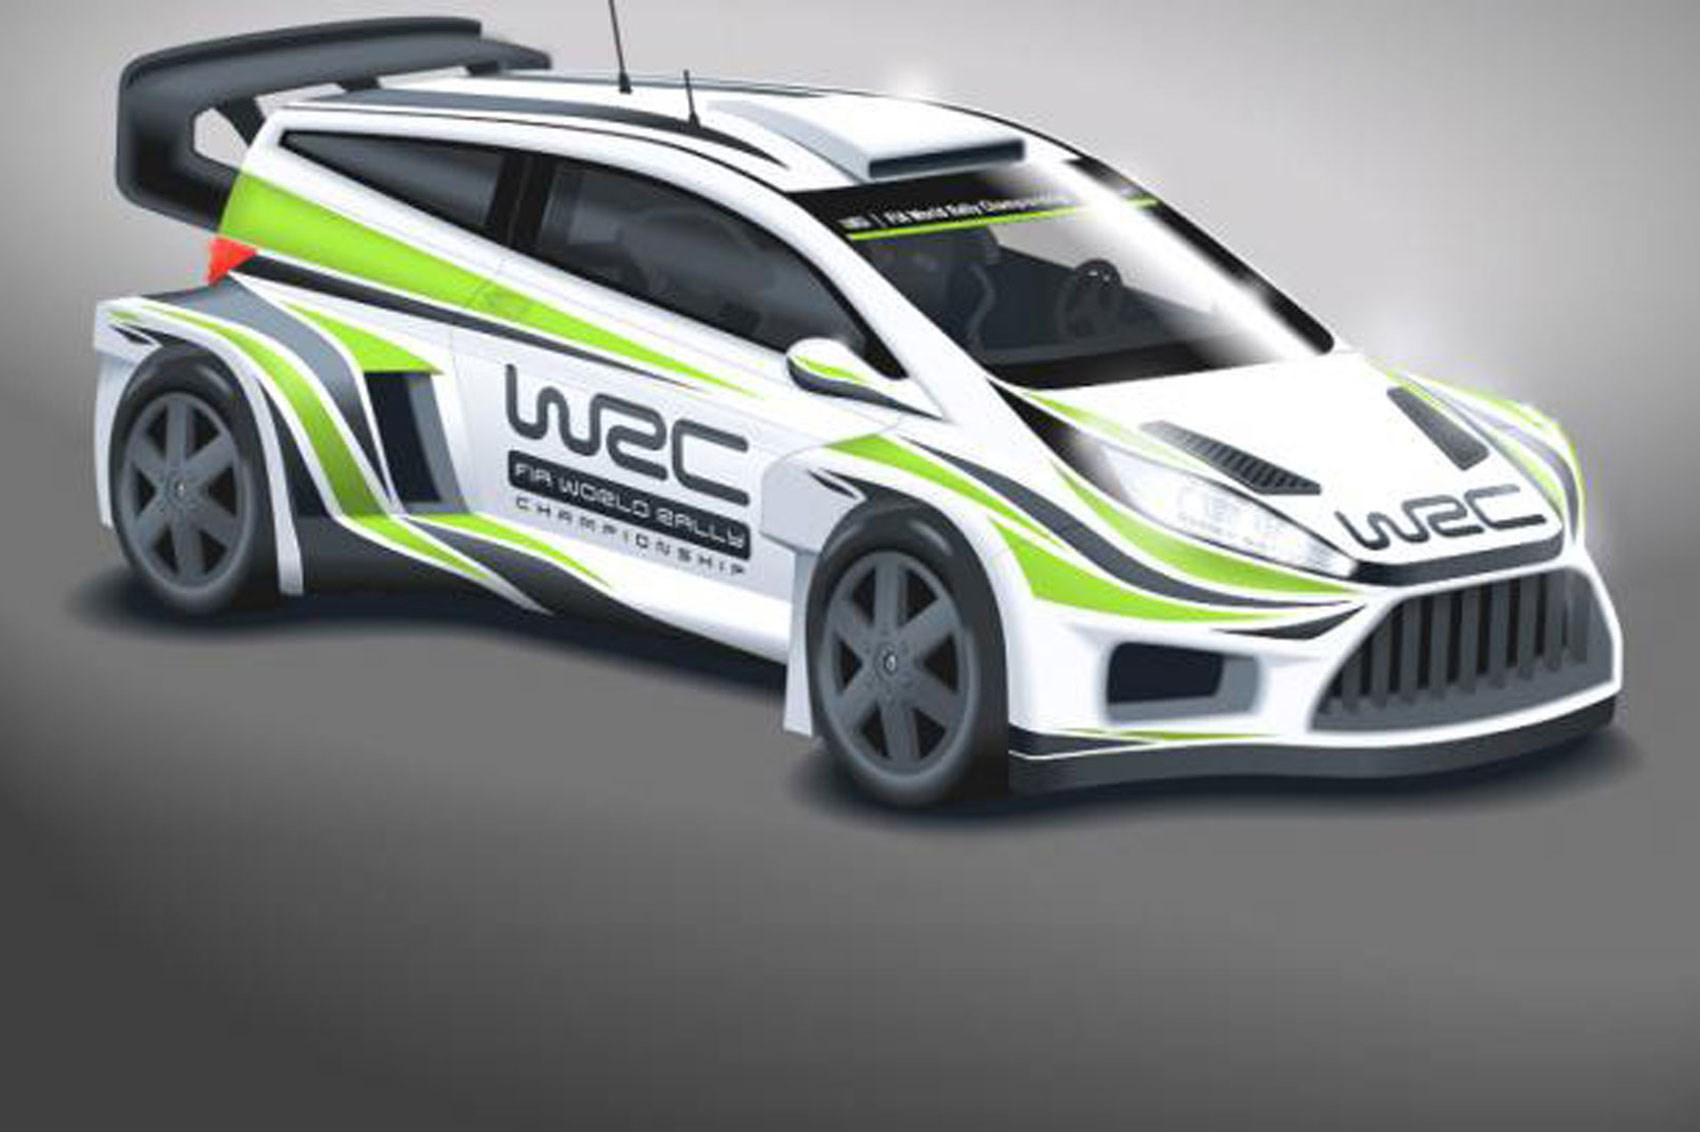 Ultrablogus  Nice Wild New Look For Wrc Cars In  By Car Magazine With Interesting Wrc Cars Will Get Wider Bodies Bigger Wings And More Power For  With Astonishing  Ford Interior Also Custom Suv Interior In Addition Plastic Filler For Car Interior And Z Interior Parts As Well As Mahogany Interiors Additionally Cutlass Supreme Interior From Carmagazinecouk With Ultrablogus  Interesting Wild New Look For Wrc Cars In  By Car Magazine With Astonishing Wrc Cars Will Get Wider Bodies Bigger Wings And More Power For  And Nice  Ford Interior Also Custom Suv Interior In Addition Plastic Filler For Car Interior From Carmagazinecouk